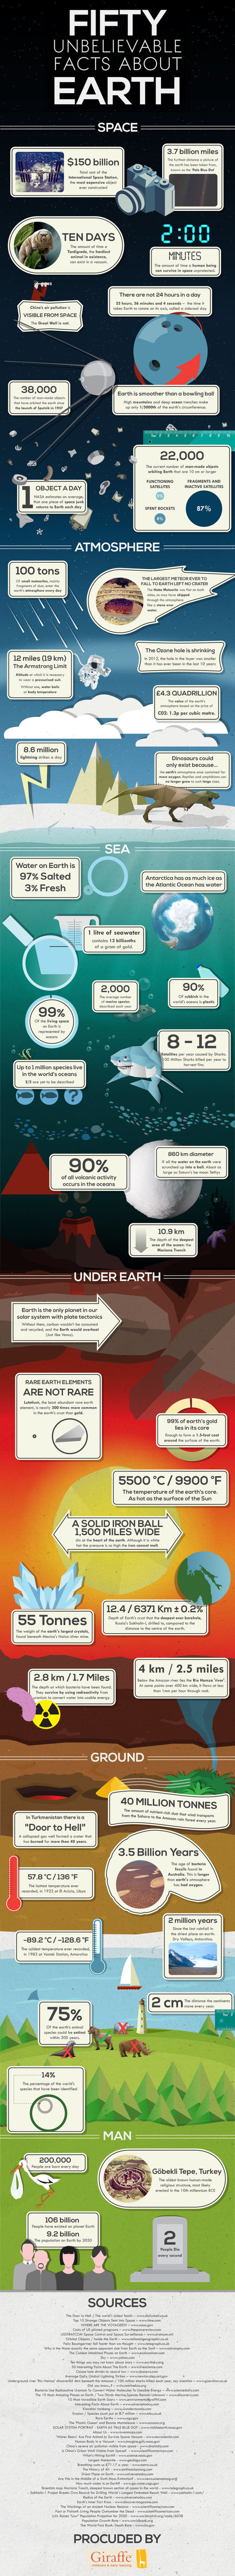 Fifty Unbelievable Facts About Earth [INFOGRAPHIC] | Interesting Reading | Scoop.it